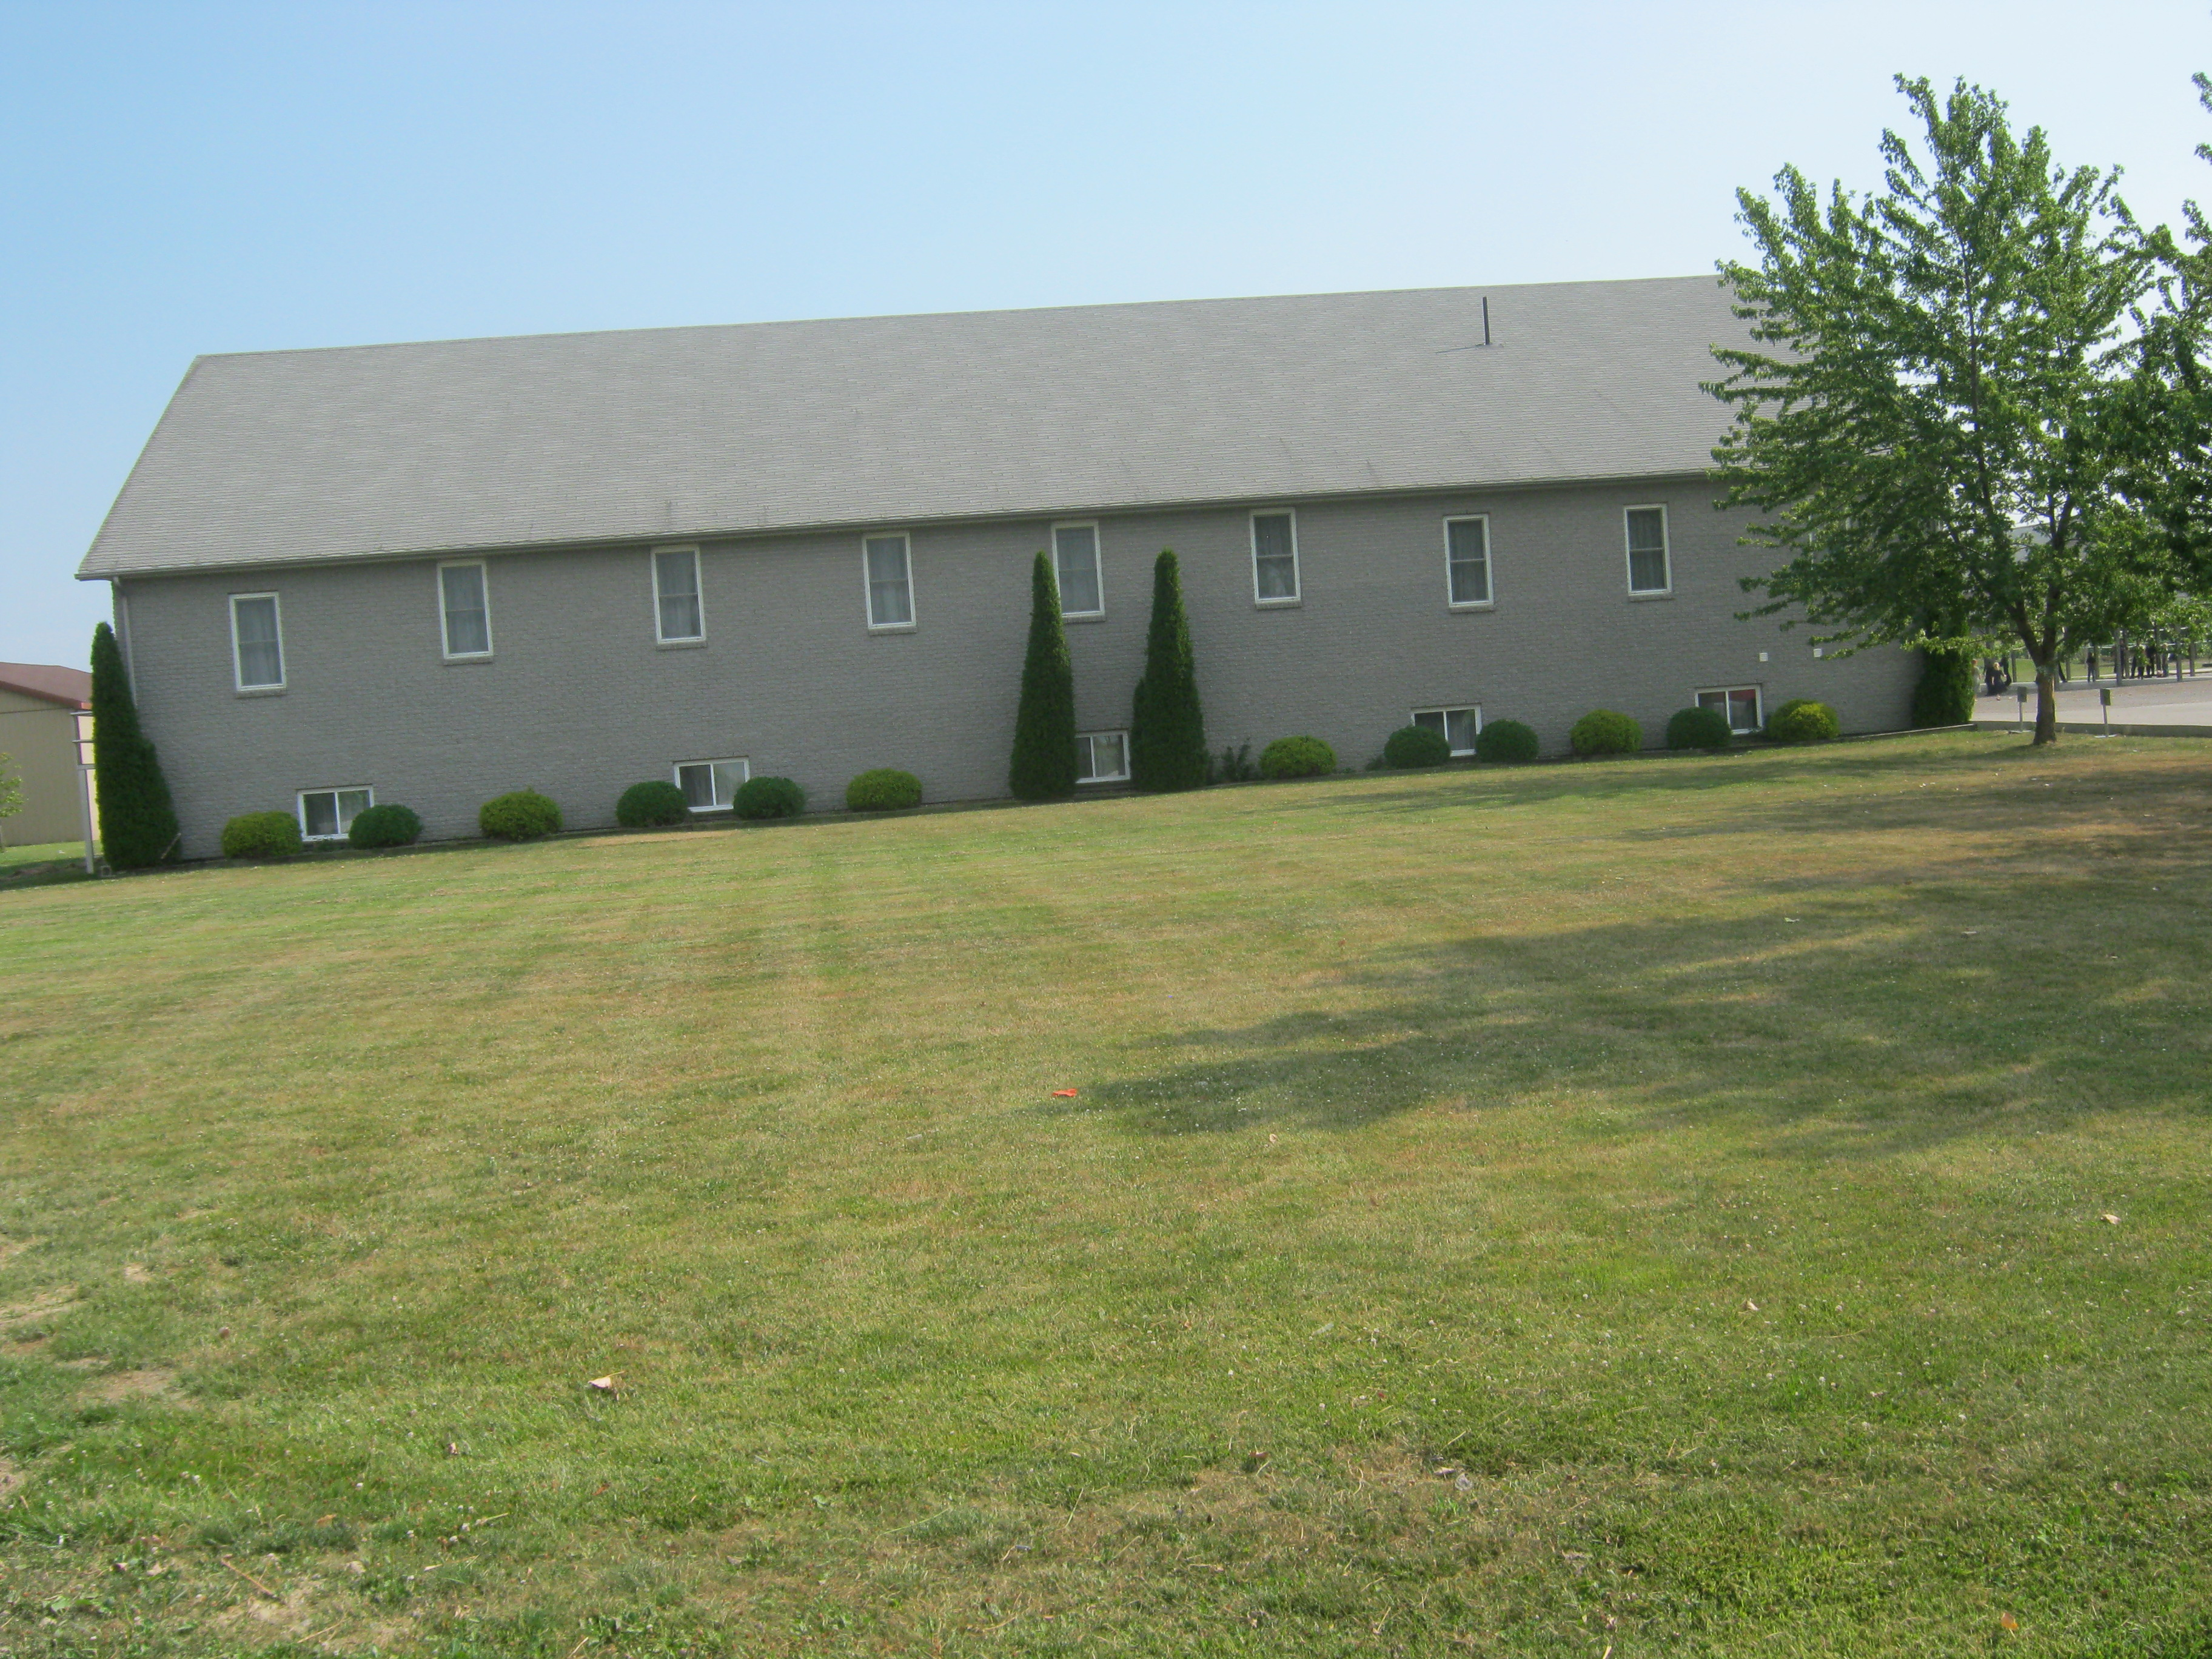 KIngsville Old Colony Mennonite Church with grass in front